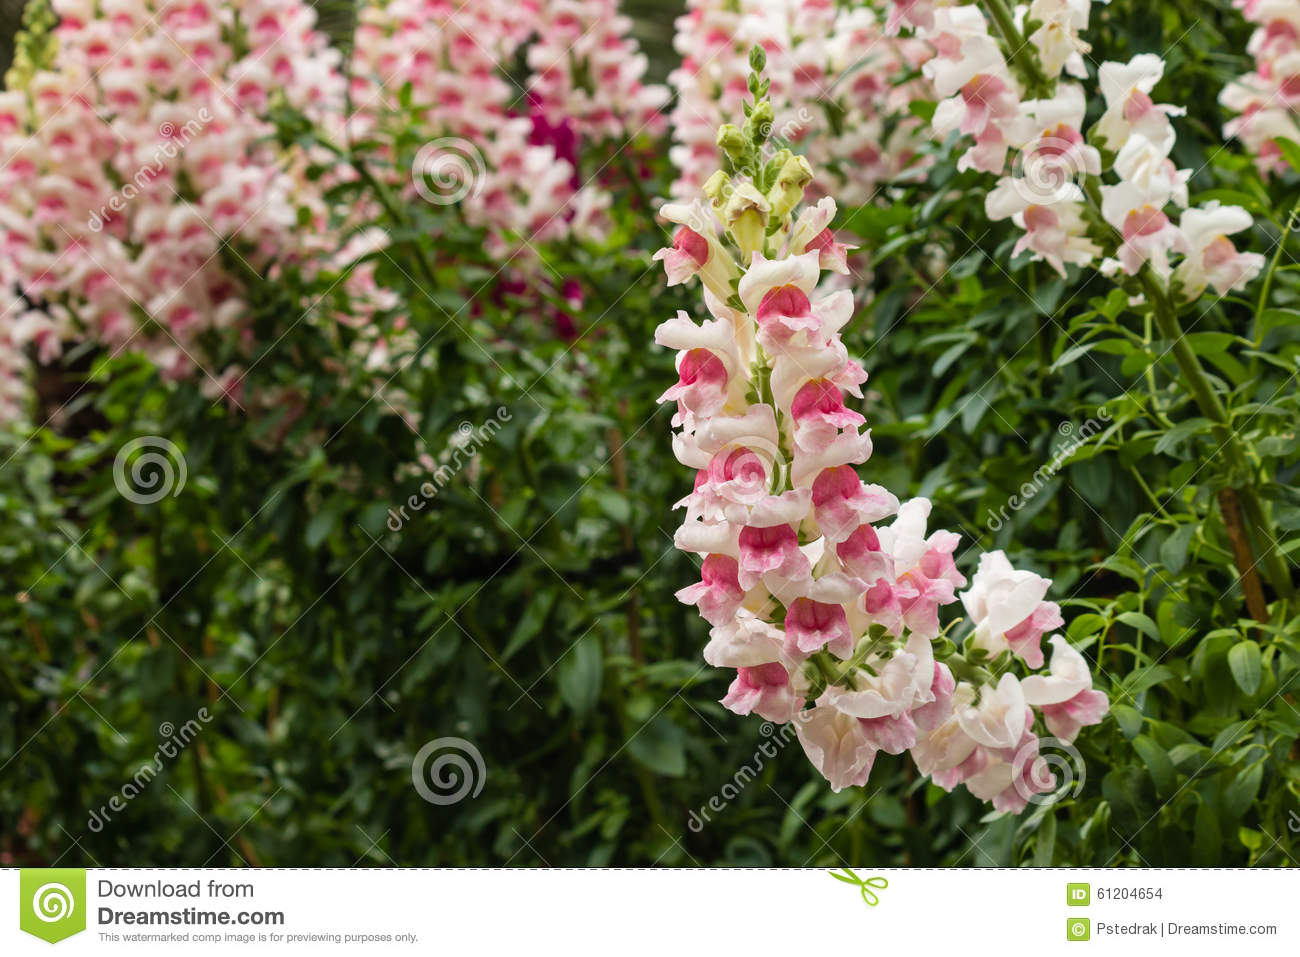 Pink Snapdragon Flowers In Bloom Stock Photo Image Of Snapdragon